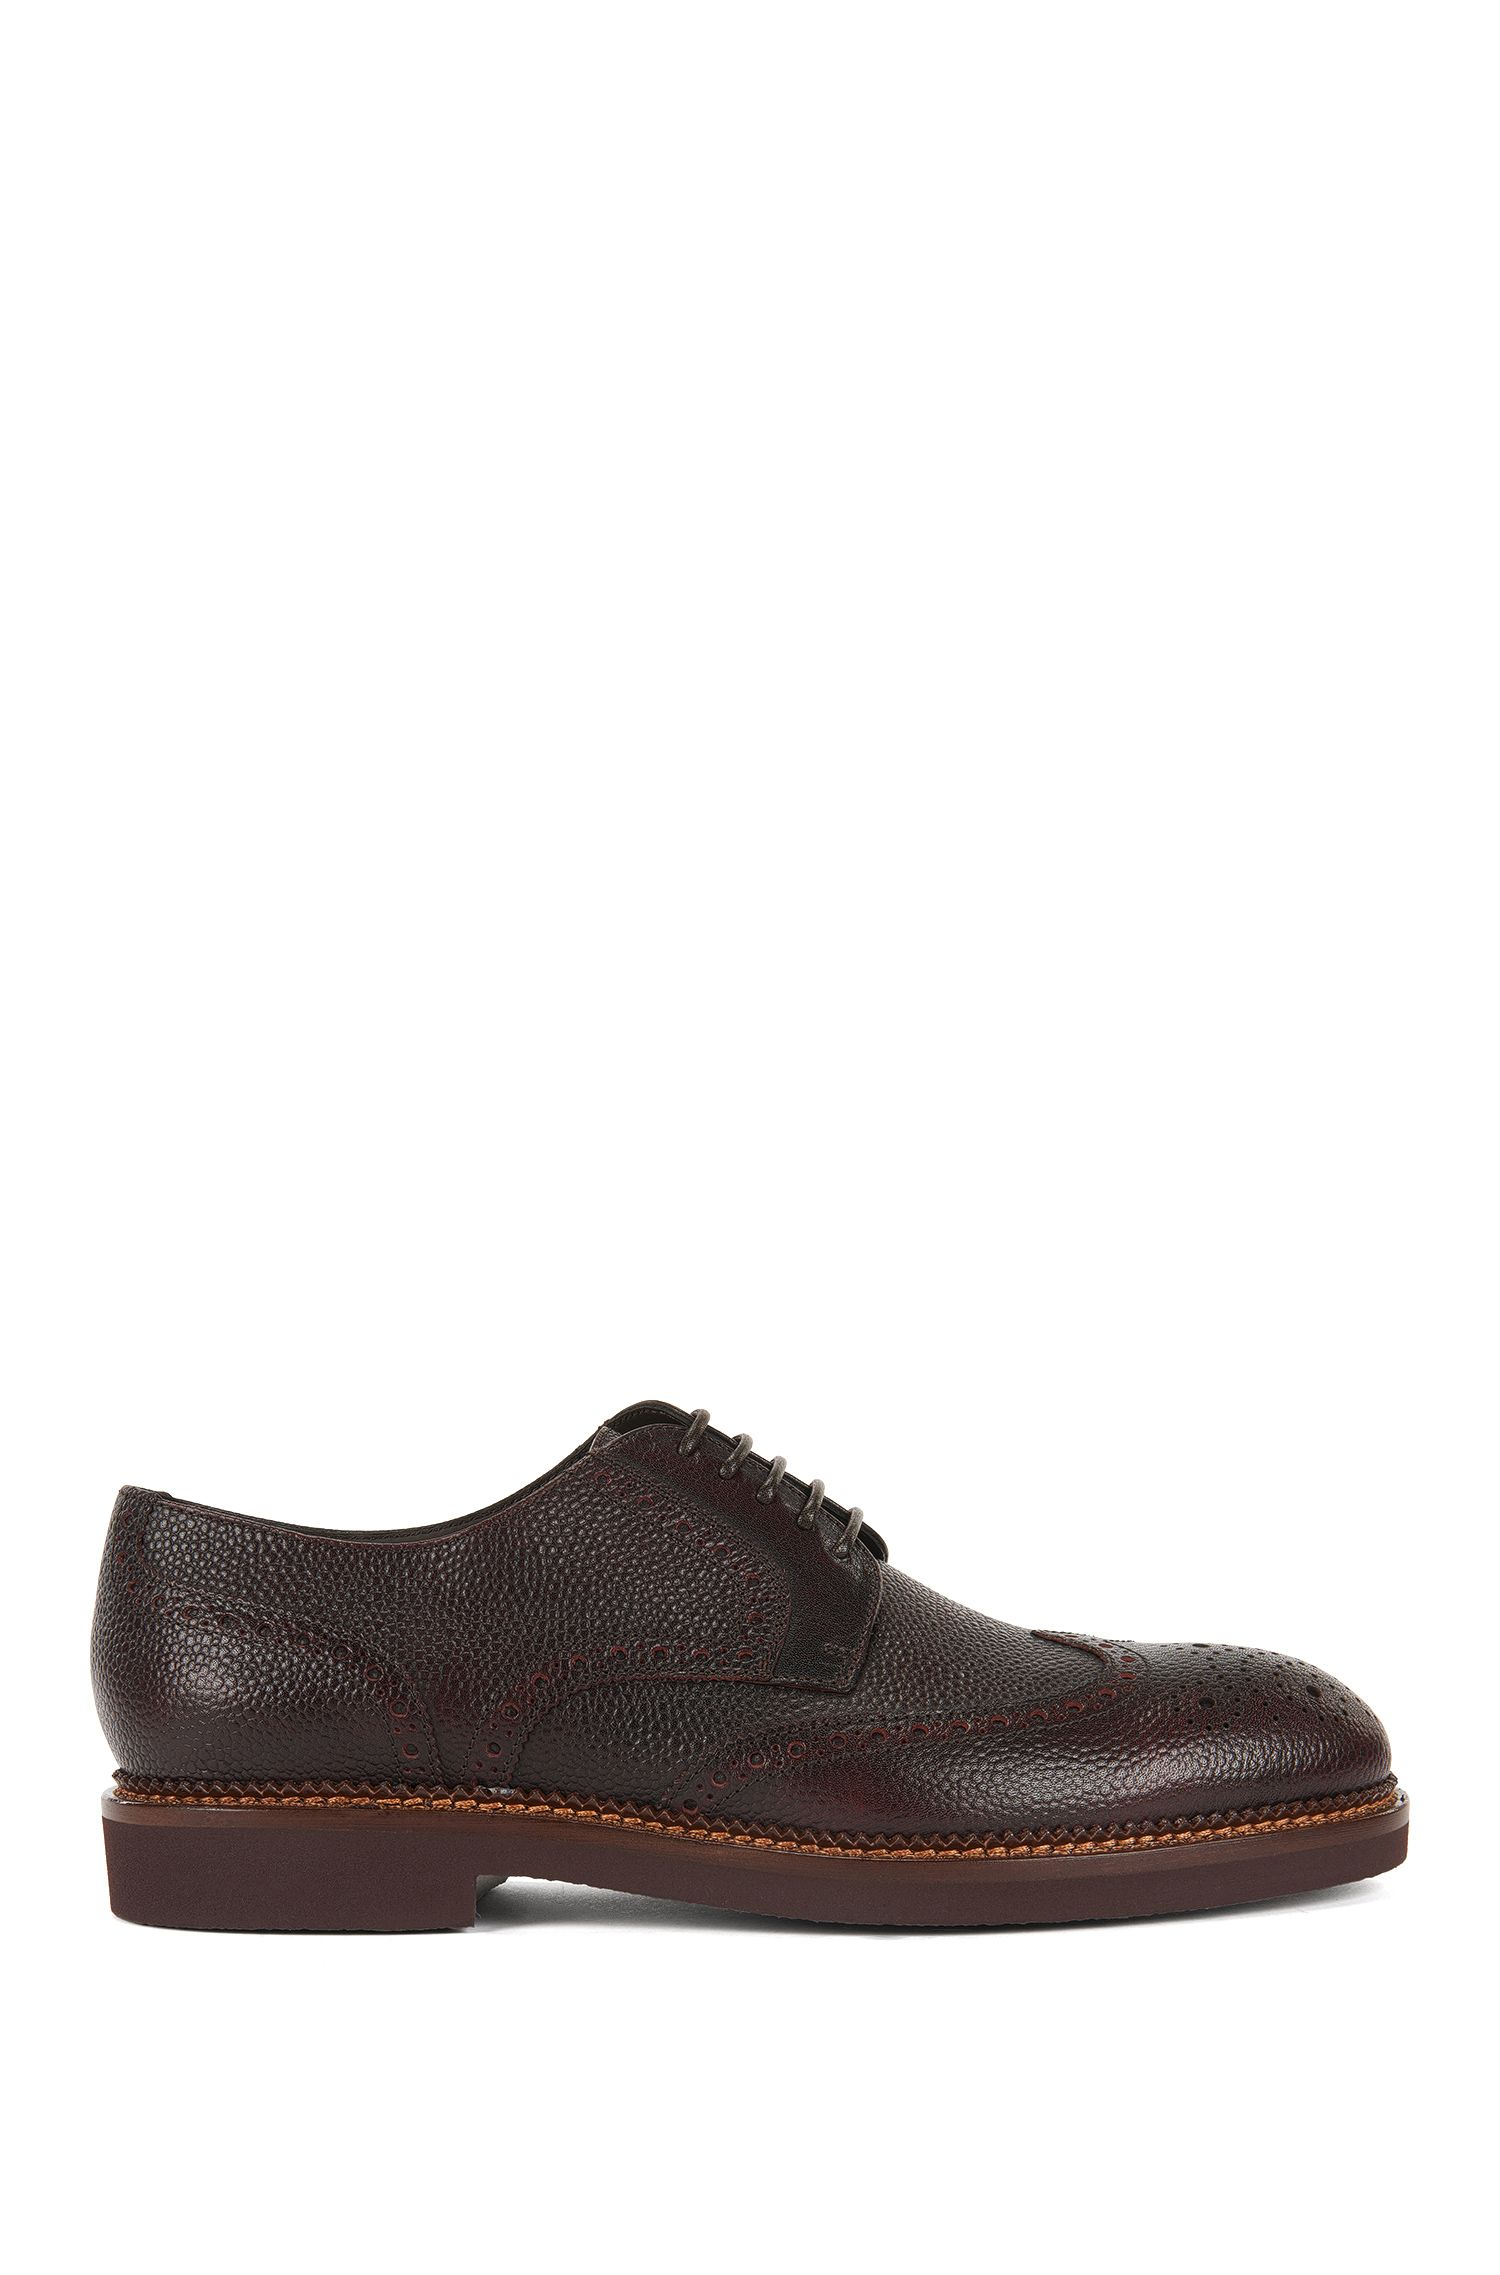 Scarpe brogue stringate in pelle martellata